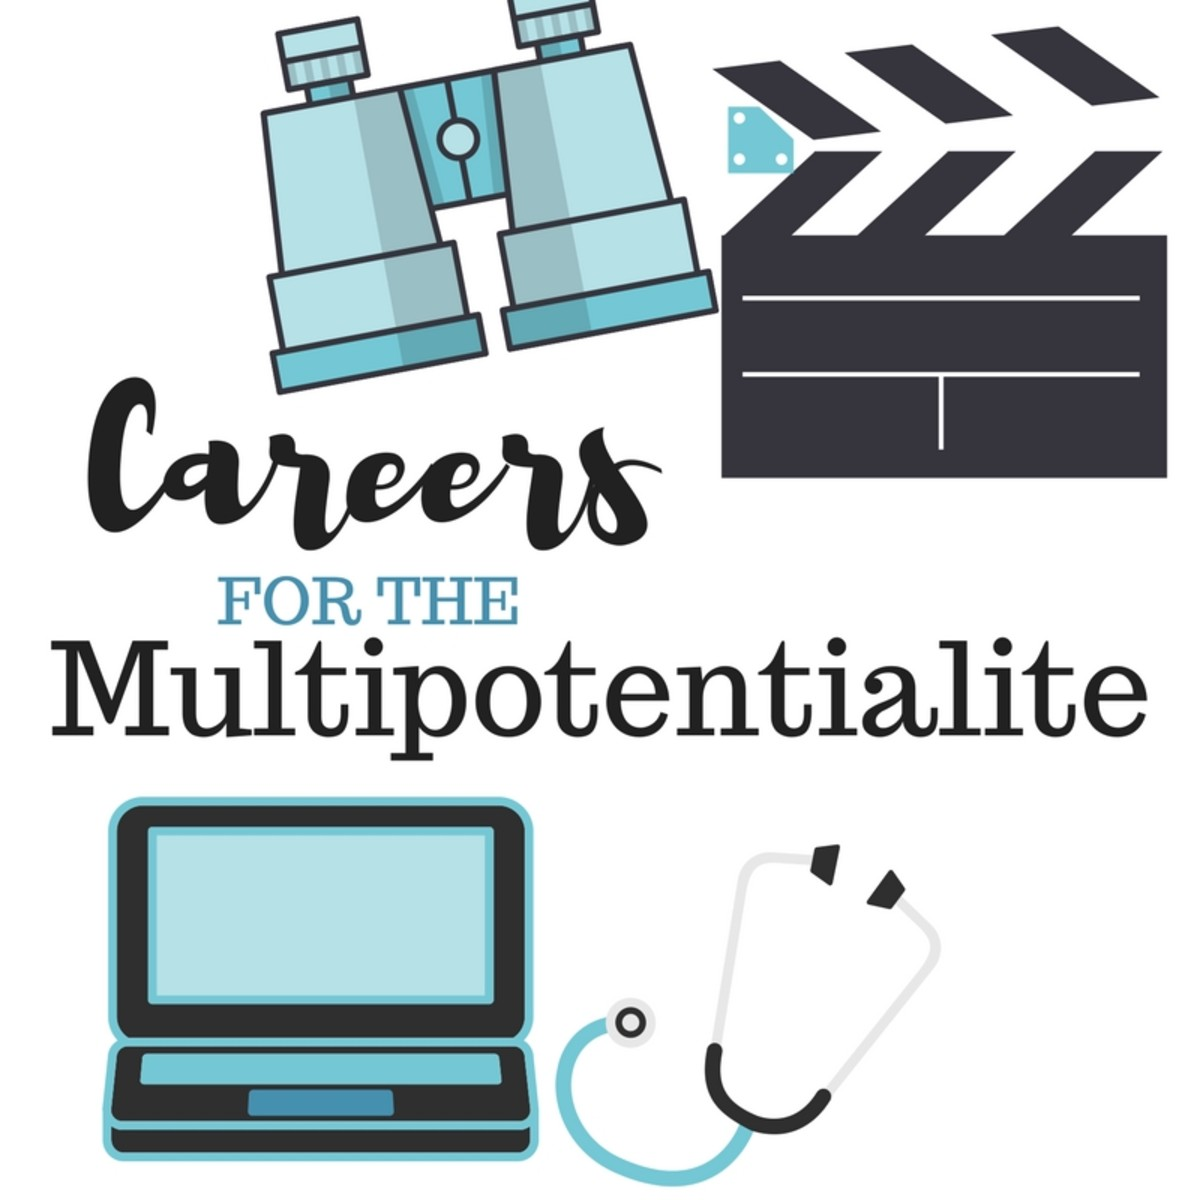 careers-as-a-multipotentialite